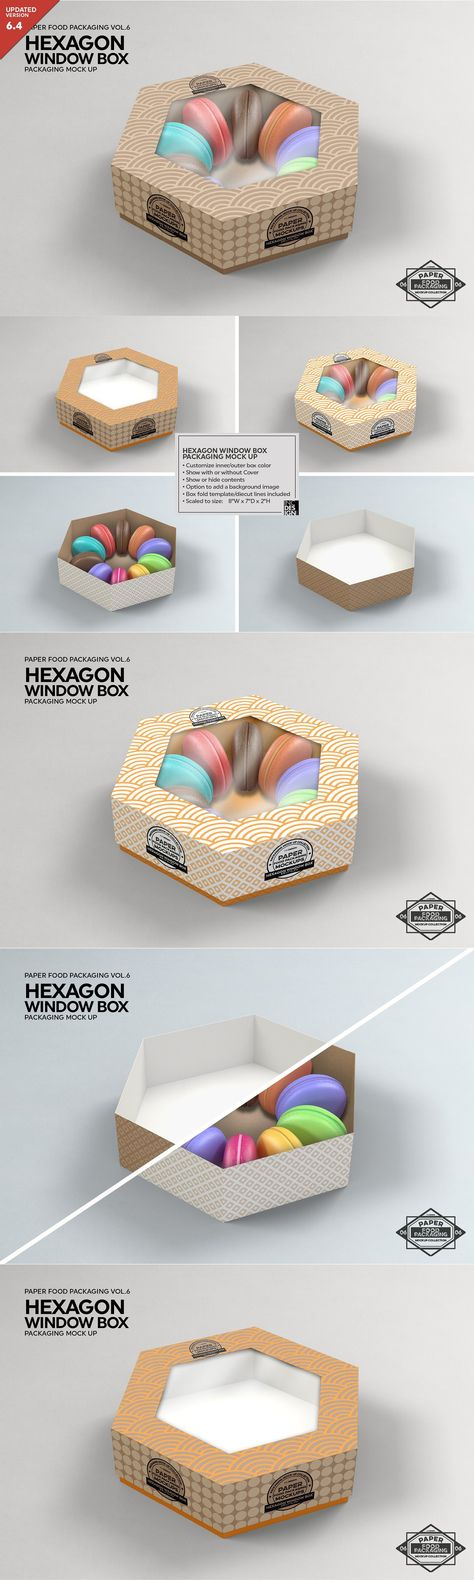 Download Hexagon Window Box Mockup Free Packaging Mockup Box Mockup Window Box